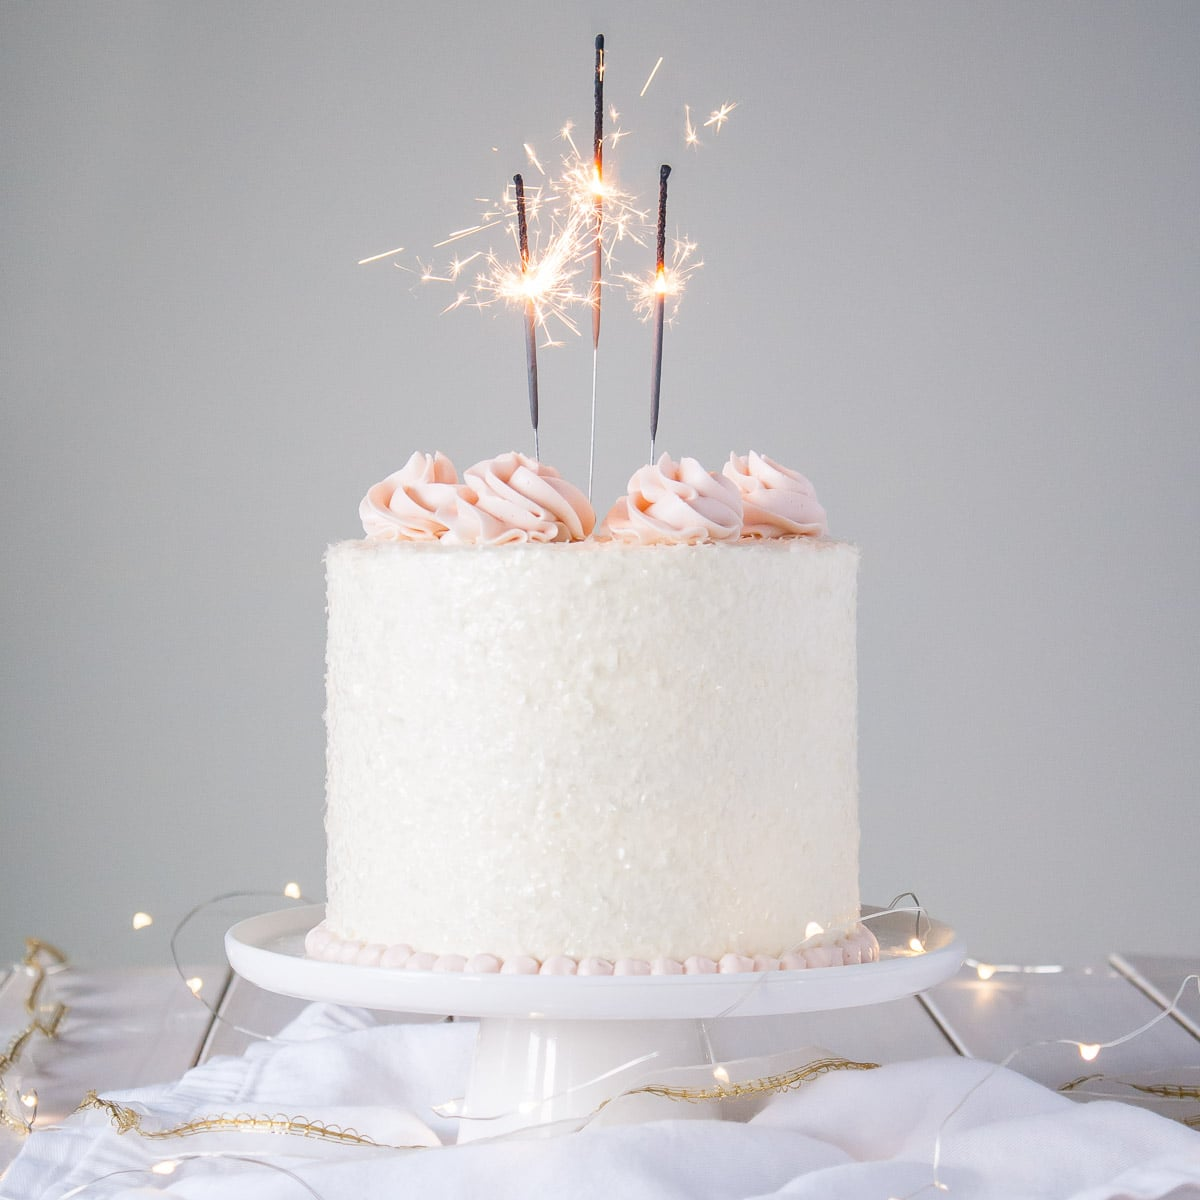 25th Birthday Cake With Sparklers